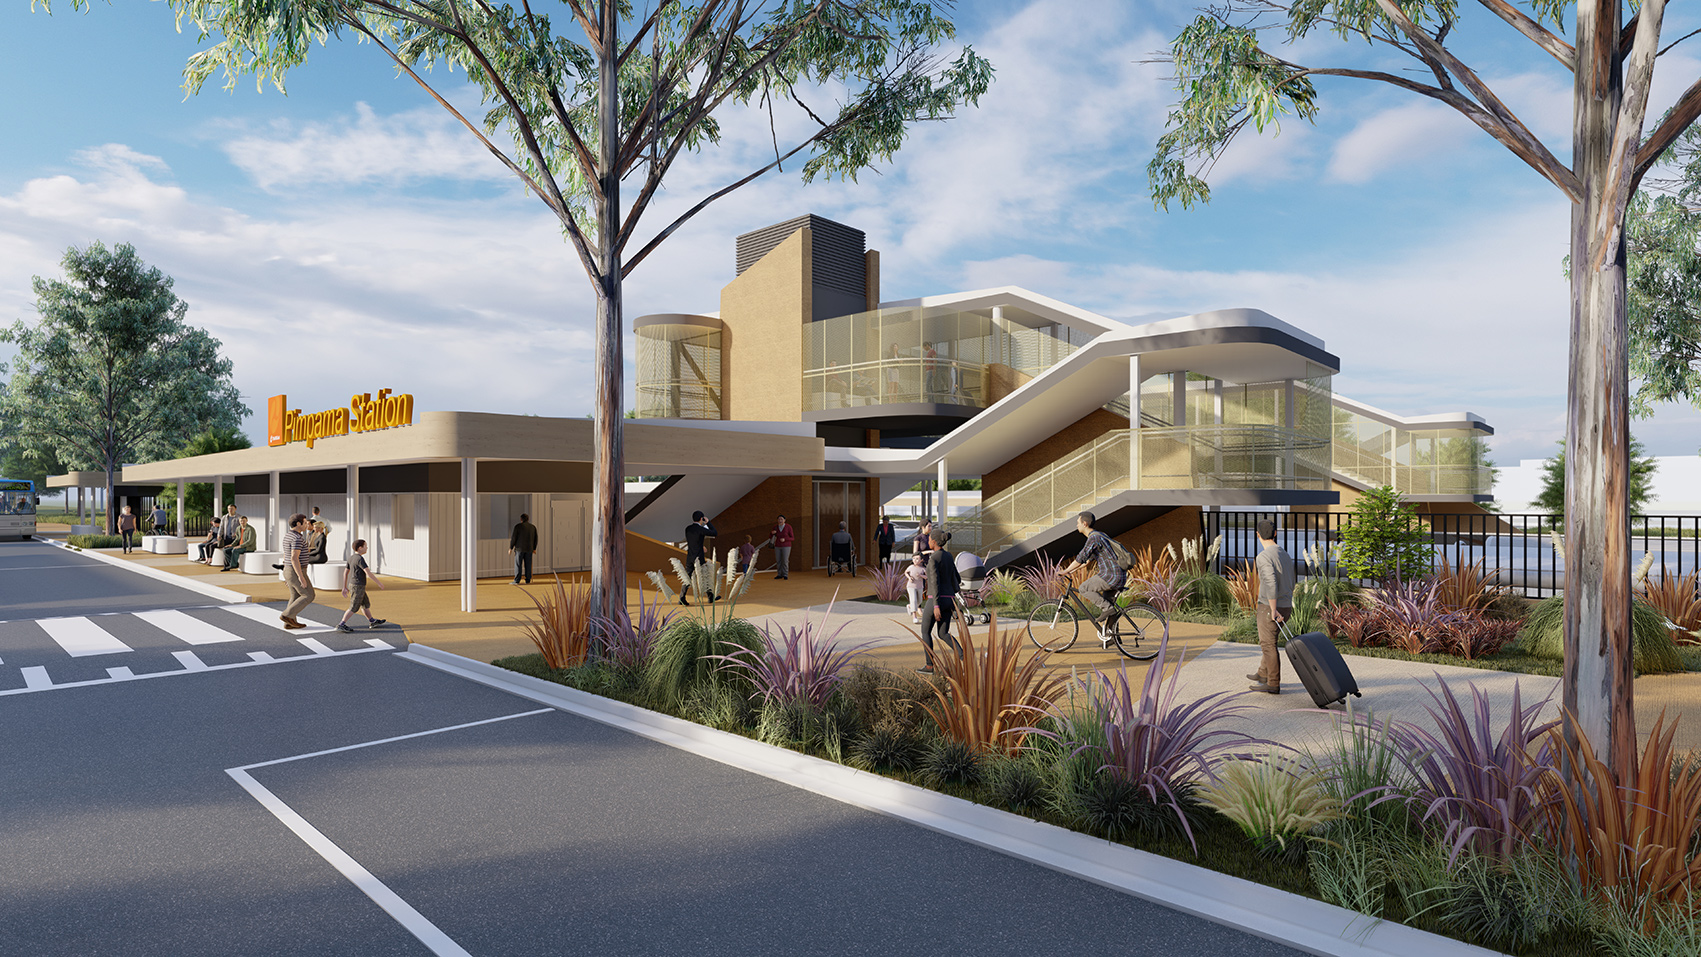 Early construction works start for Gold Coast's new Pimpama station